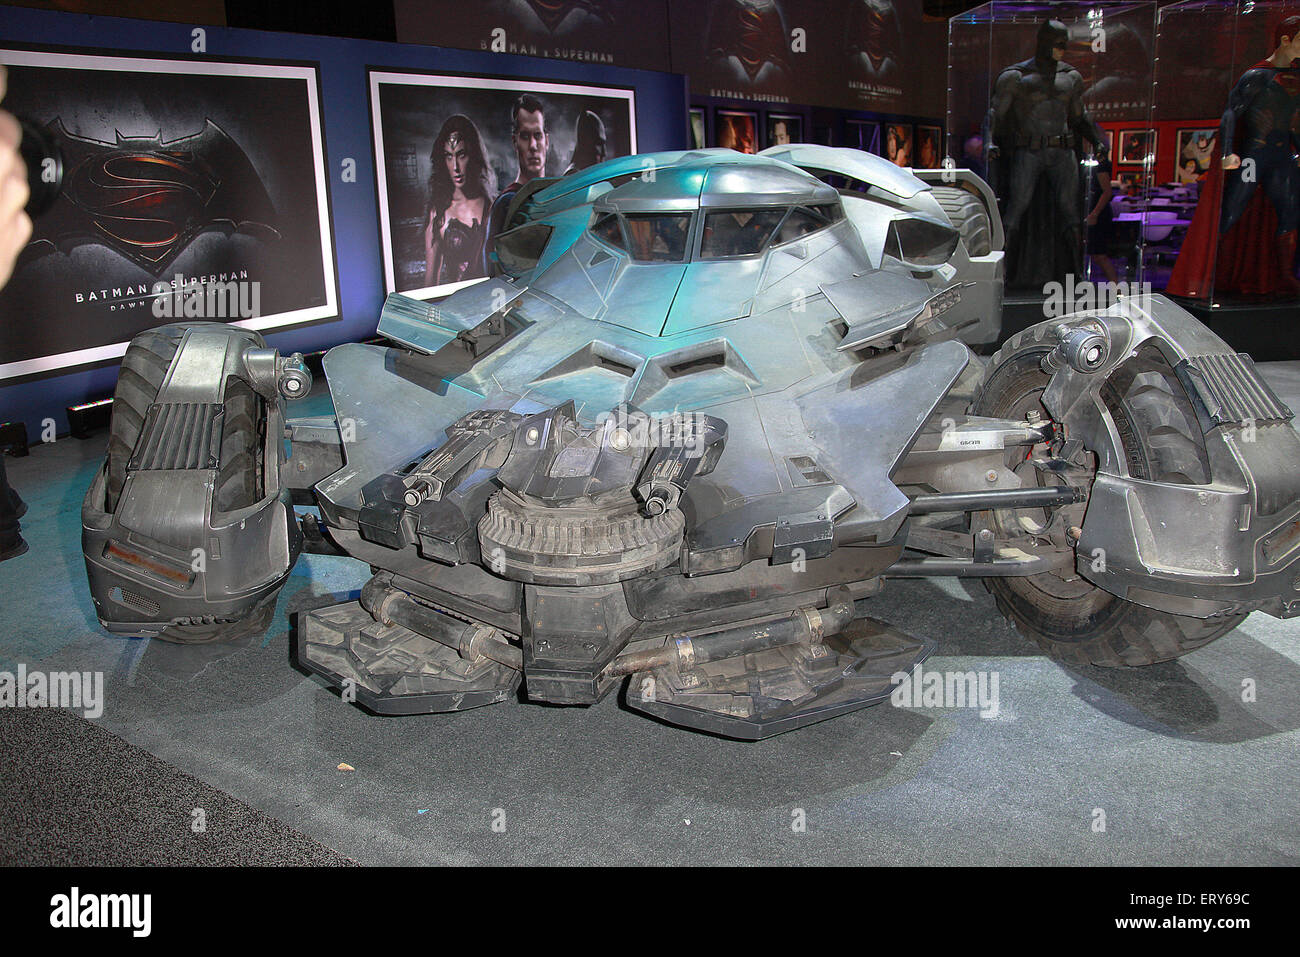 Las Vegas, Nevada, USA. 9th June, 2015. Warner Brothers Consumer Products unveils the Batmobile from Batman vs Superman: - Stock Image